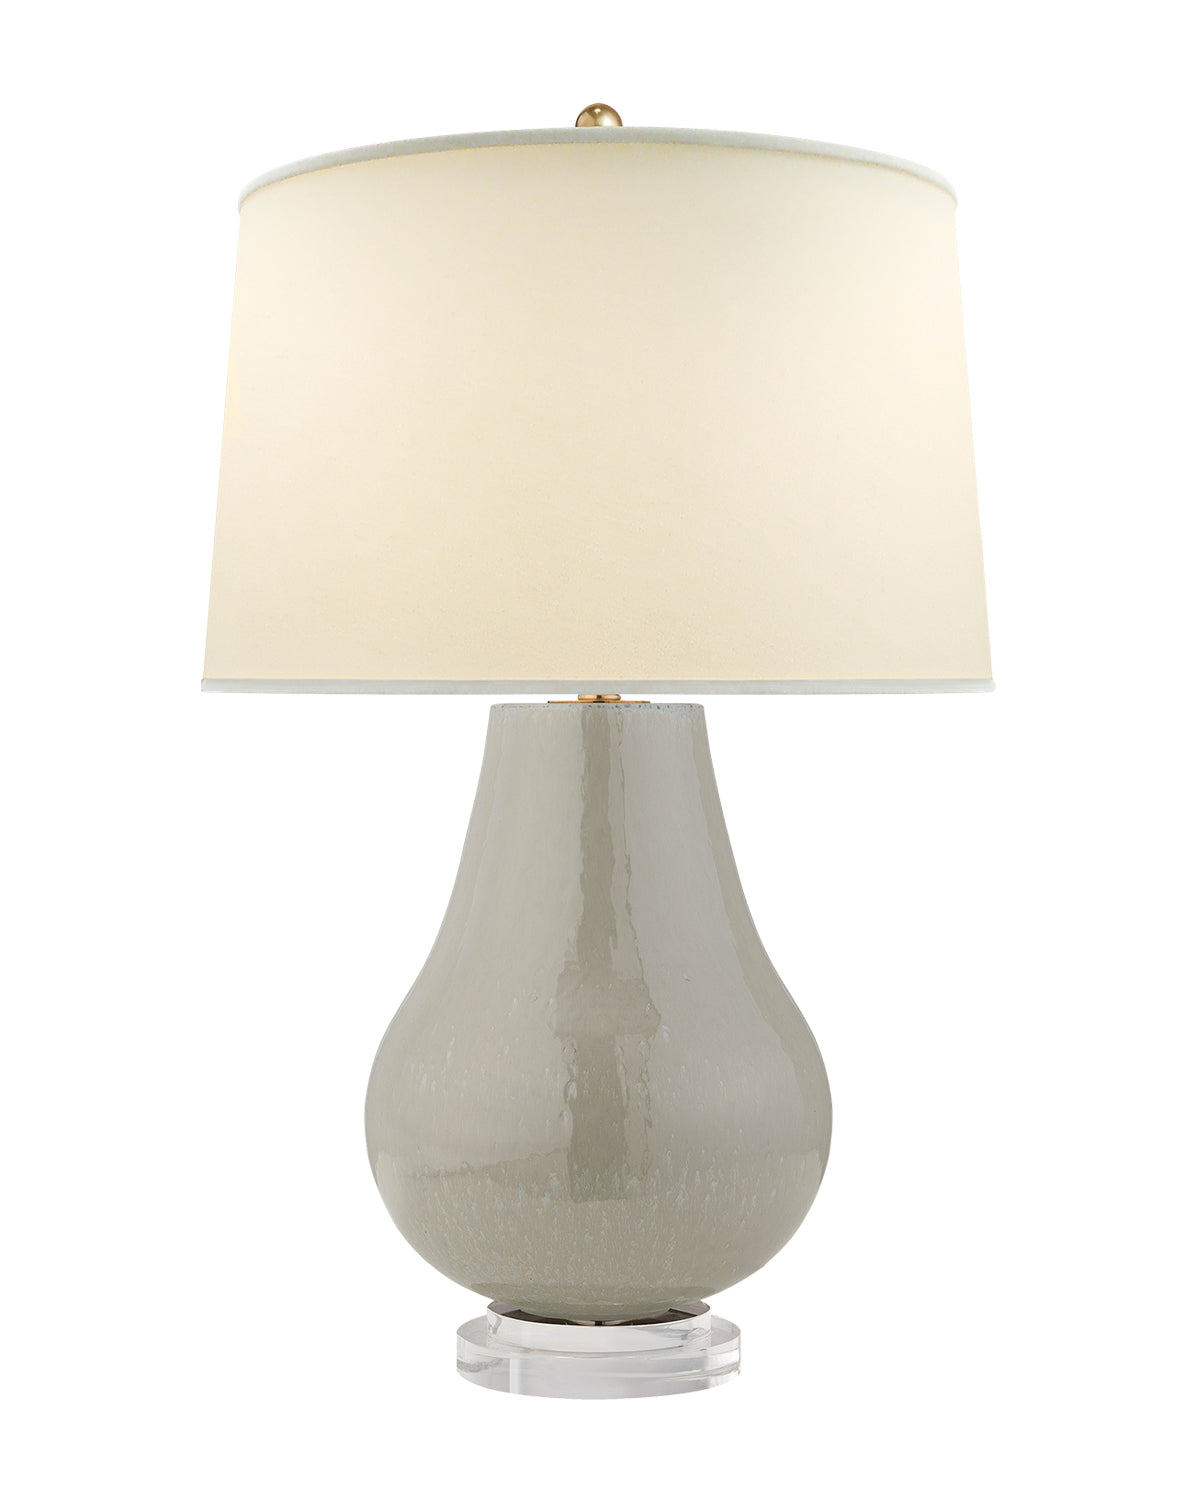 Arica table lamp 1 jpgv1524689322